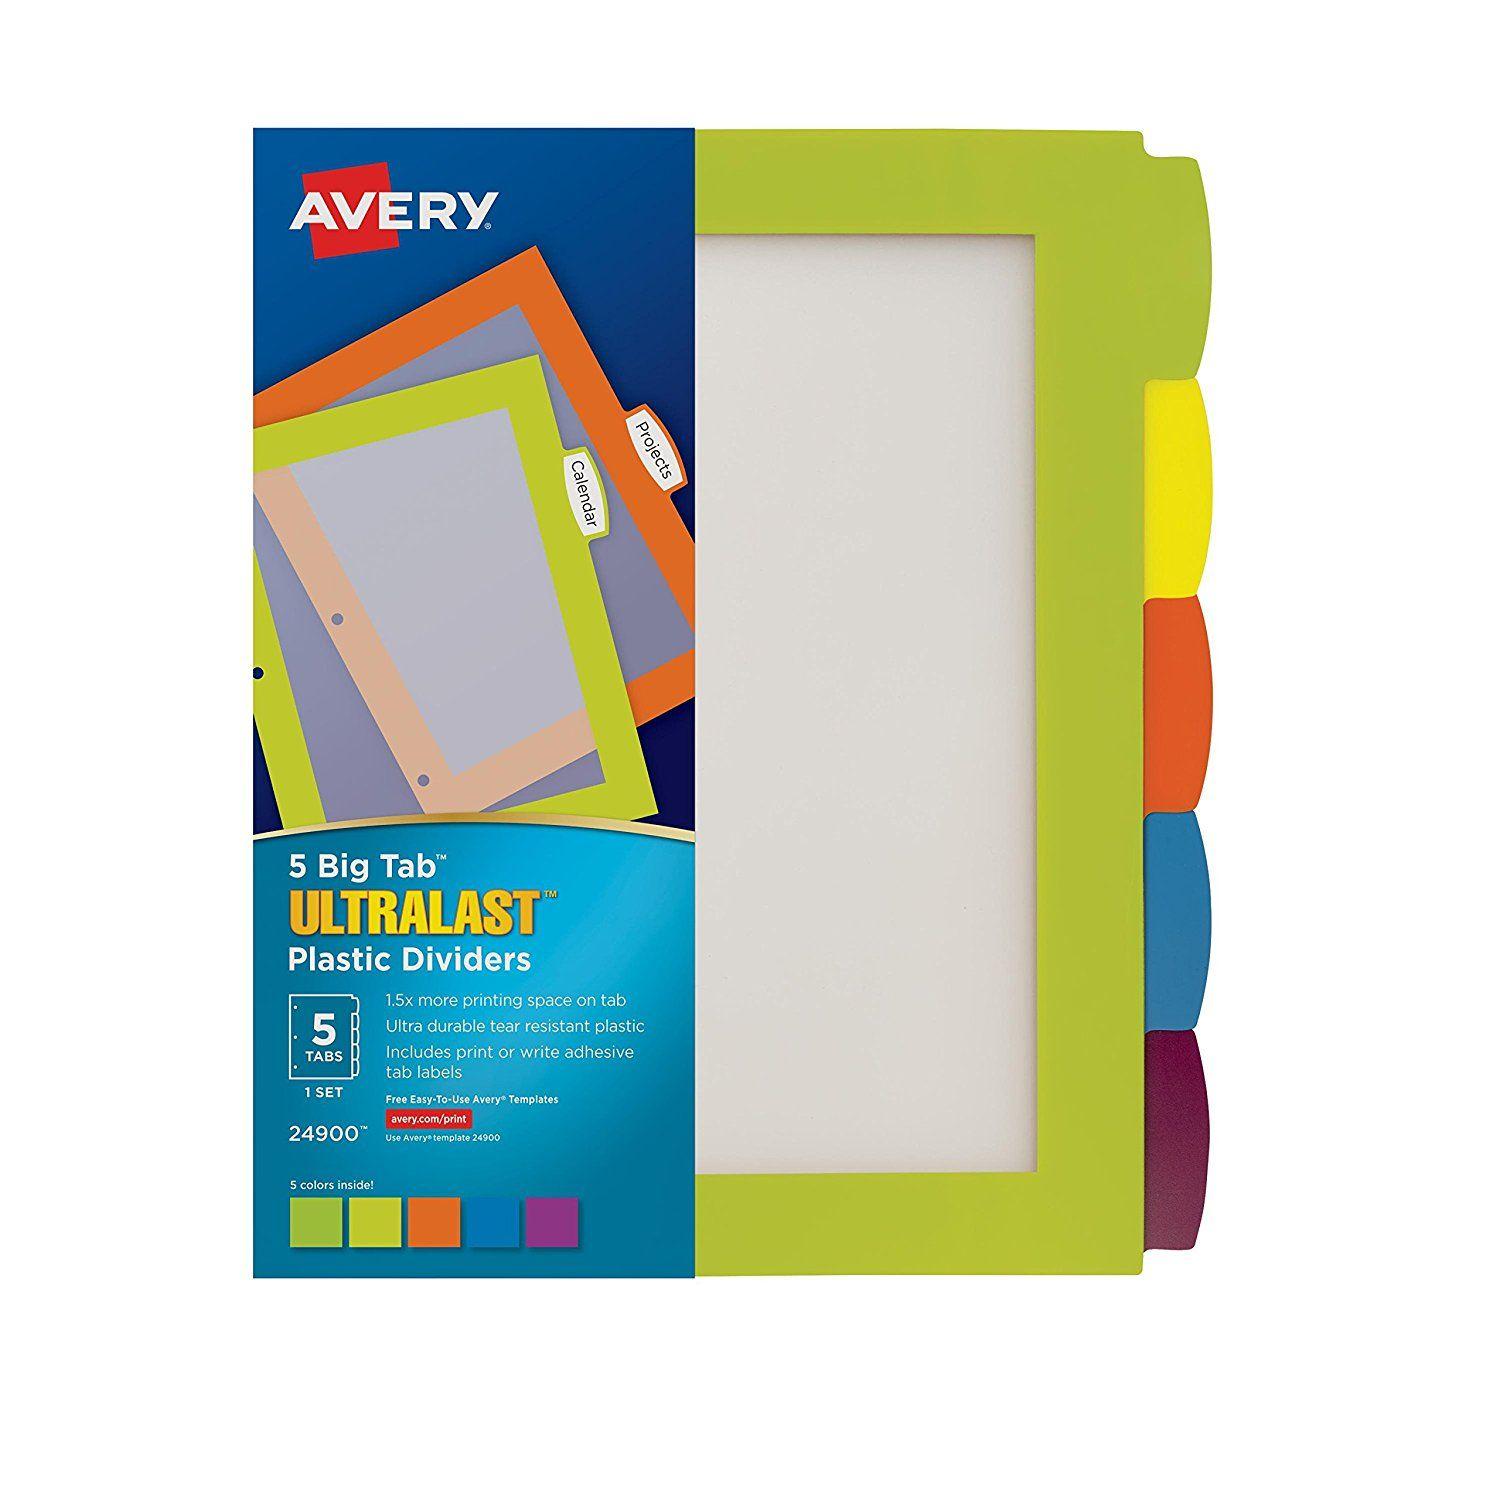 Amazoncom Avery Ultralast Big Tab Plastic Dividers Tabs Set - Avery 5 tab index template